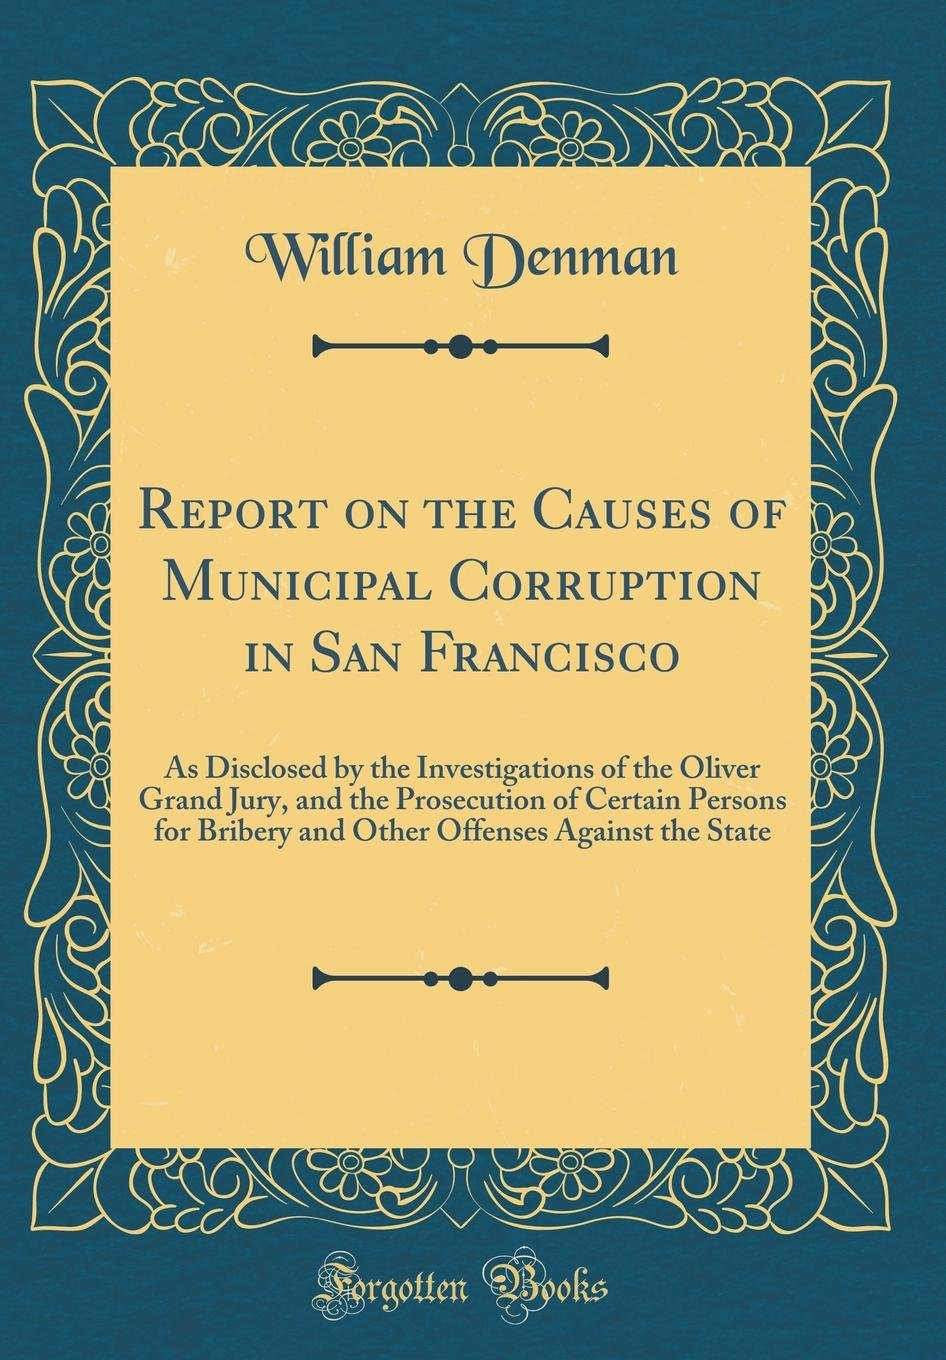 Download Report on the Causes of Municipal Corruption in San Francisco: As Disclosed by the Investigations of the Oliver Grand Jury, and the Prosecution of ... Offenses Against the State (Classic Reprint) ebook